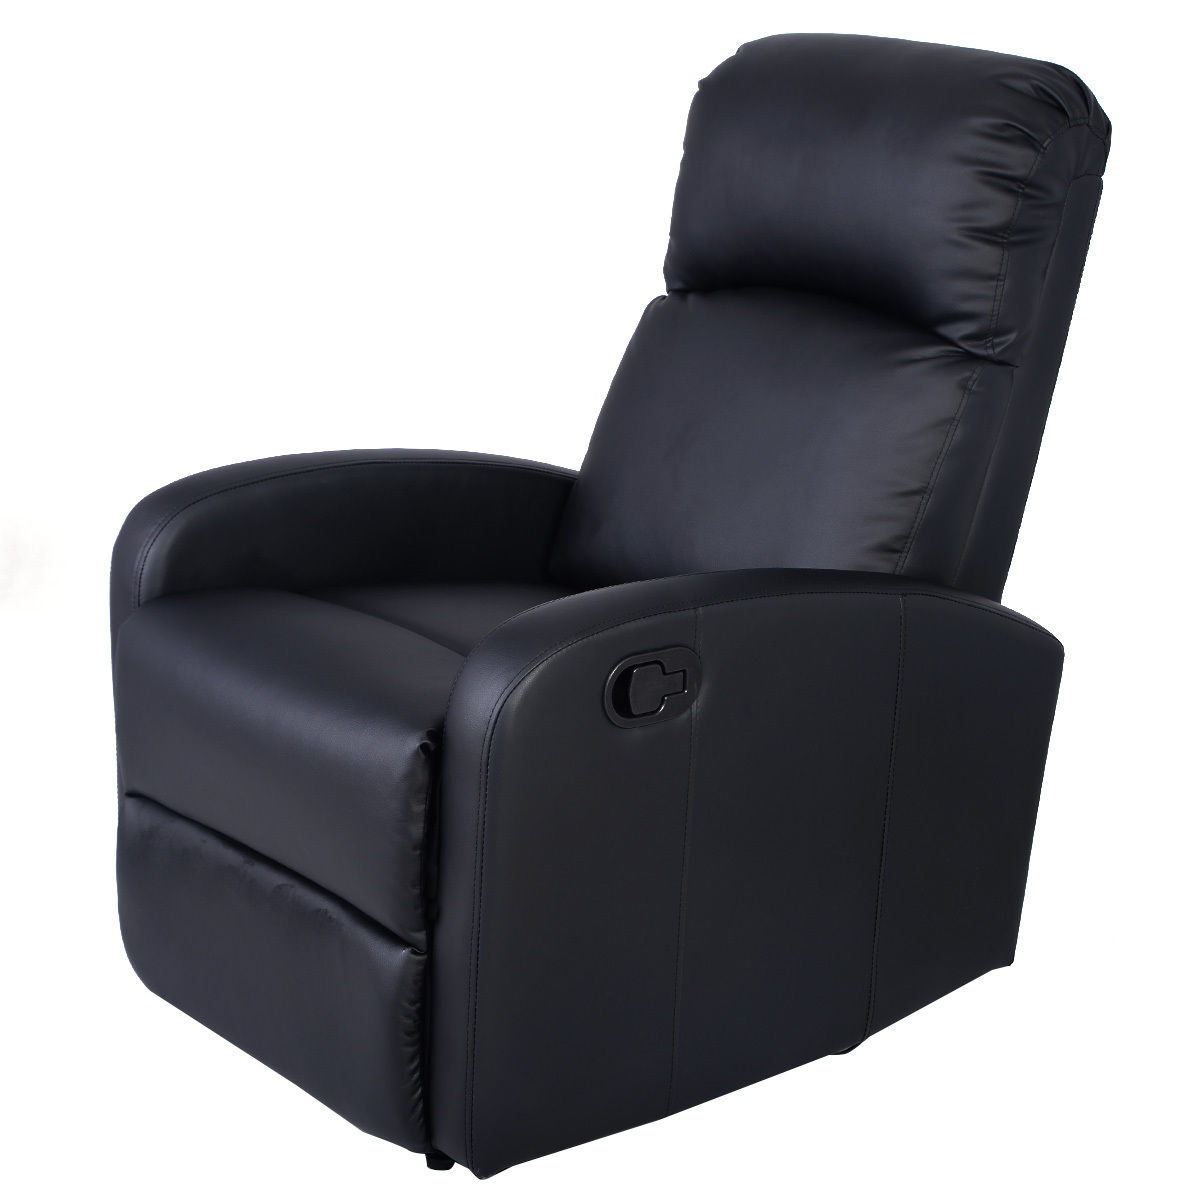 Rogan Leather Cafe Latte Swivel Glider Recliners Regarding Well Known Furniture: Surprising Simmons Recliners For Contemporary Living Room (Gallery 14 of 20)